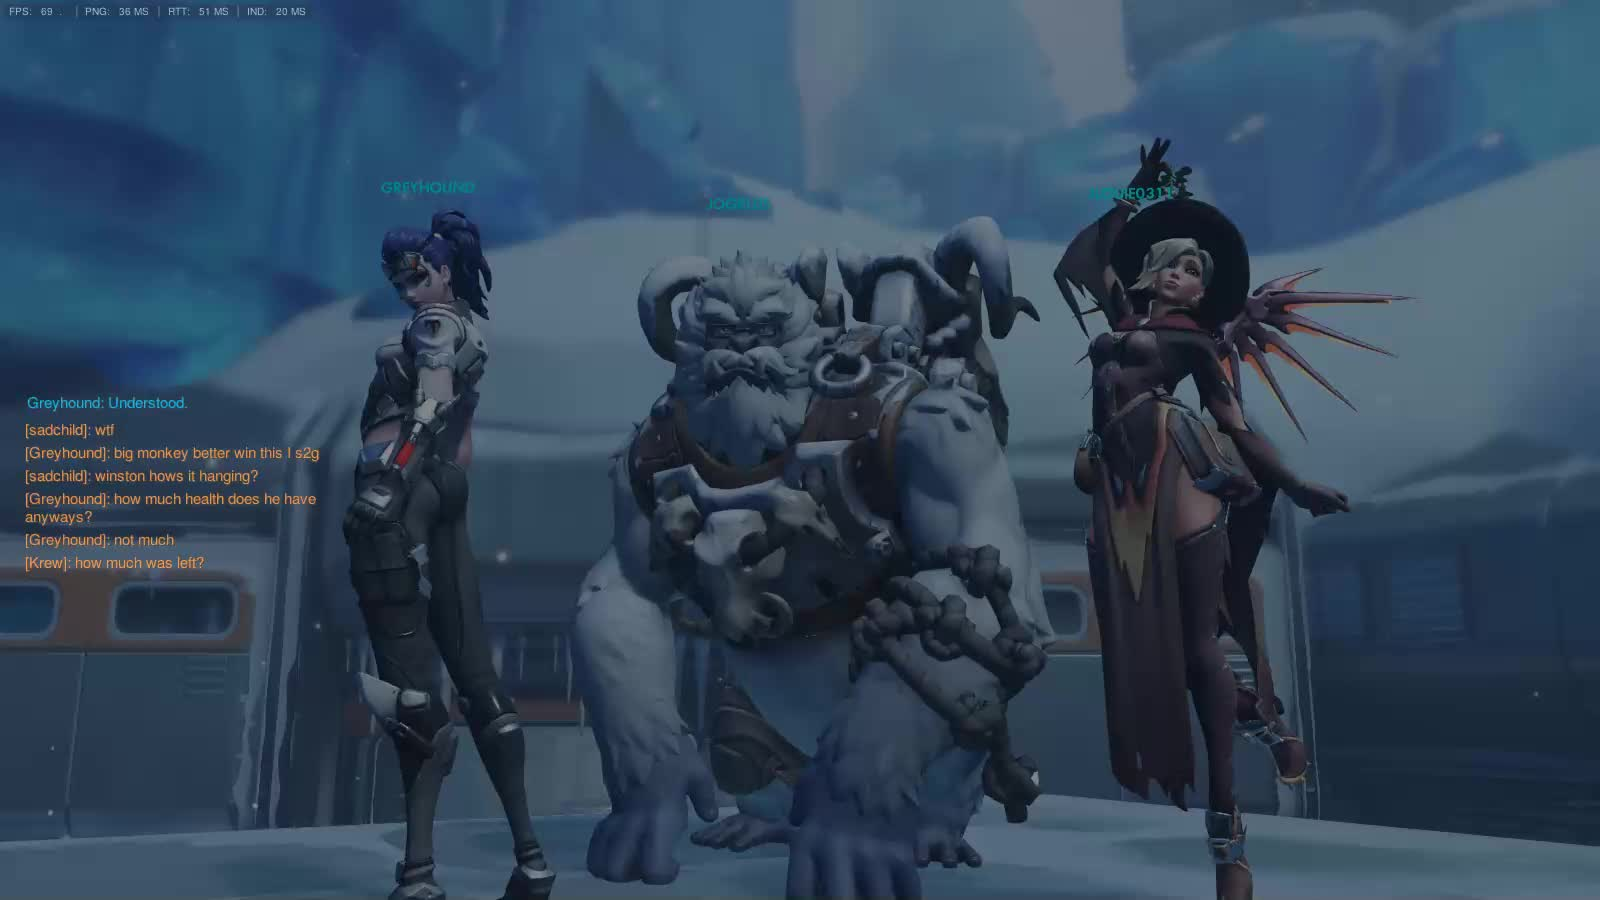 3v3, overwatch, widowmaker, double shot GIFs